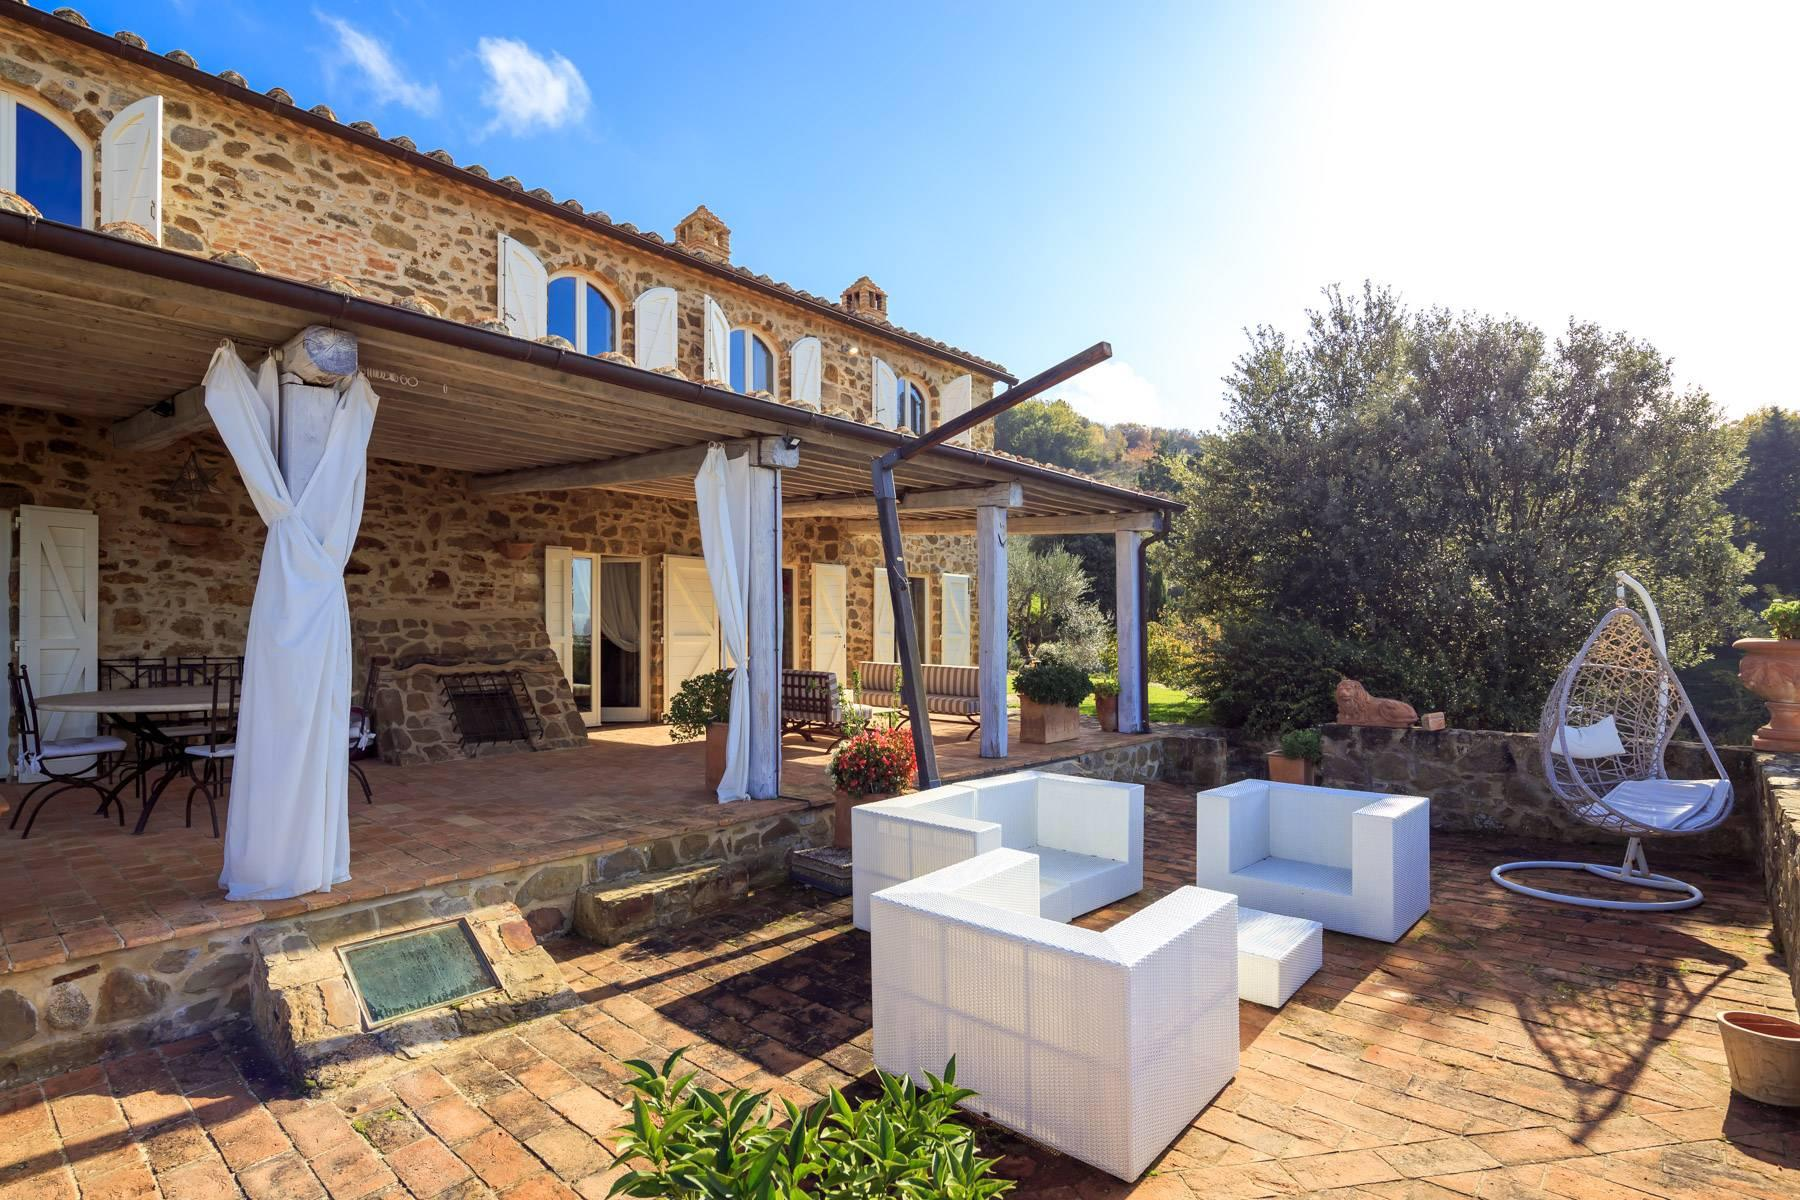 Marvelous newly restored farmhouse close to Montalcino - 22